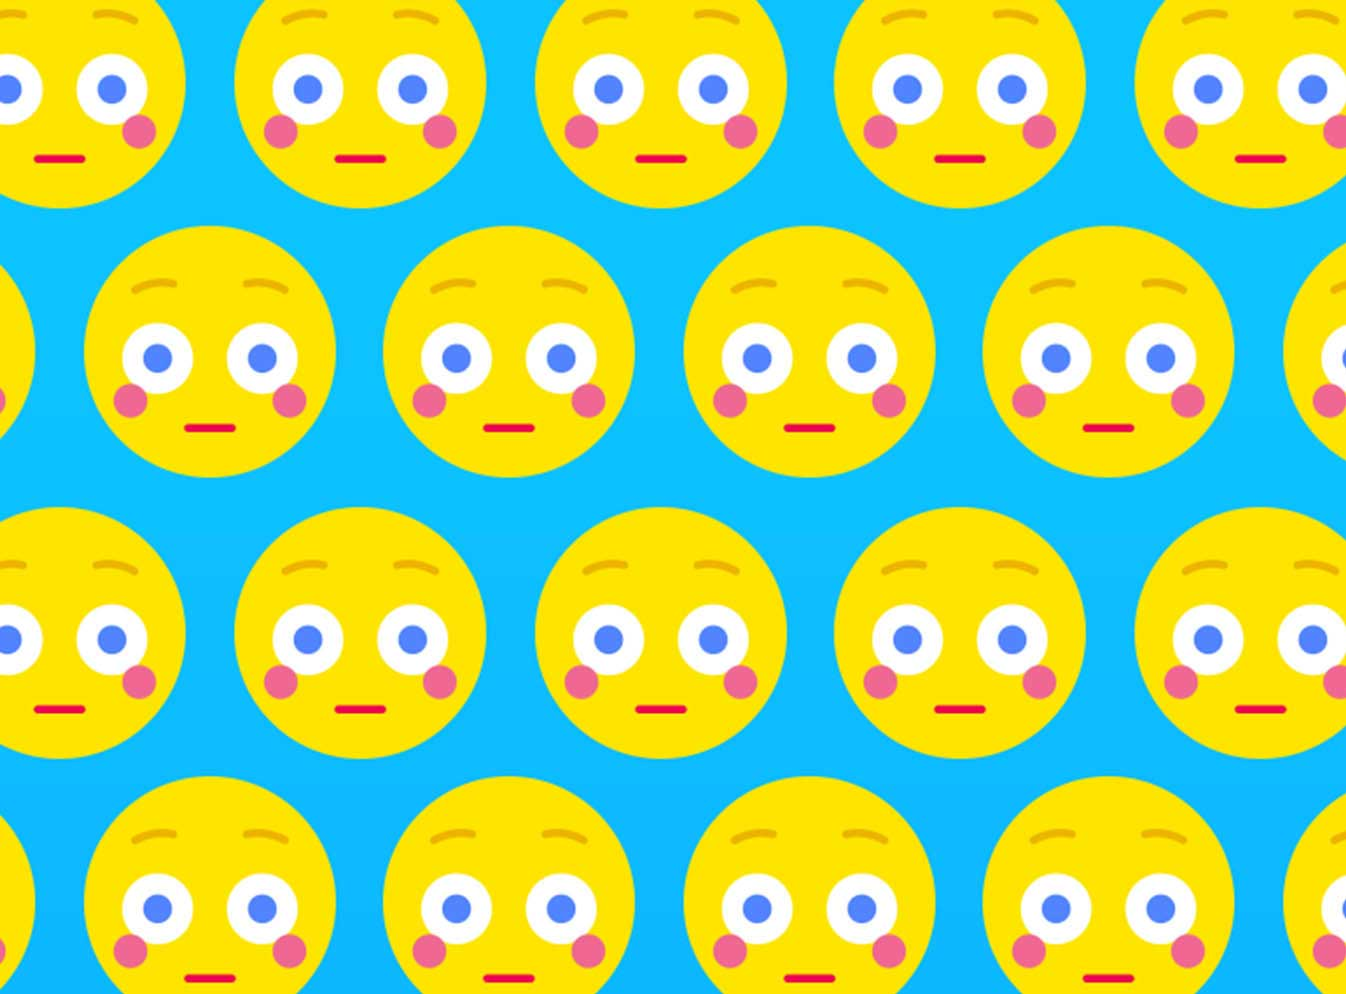 Tile of emoji faces